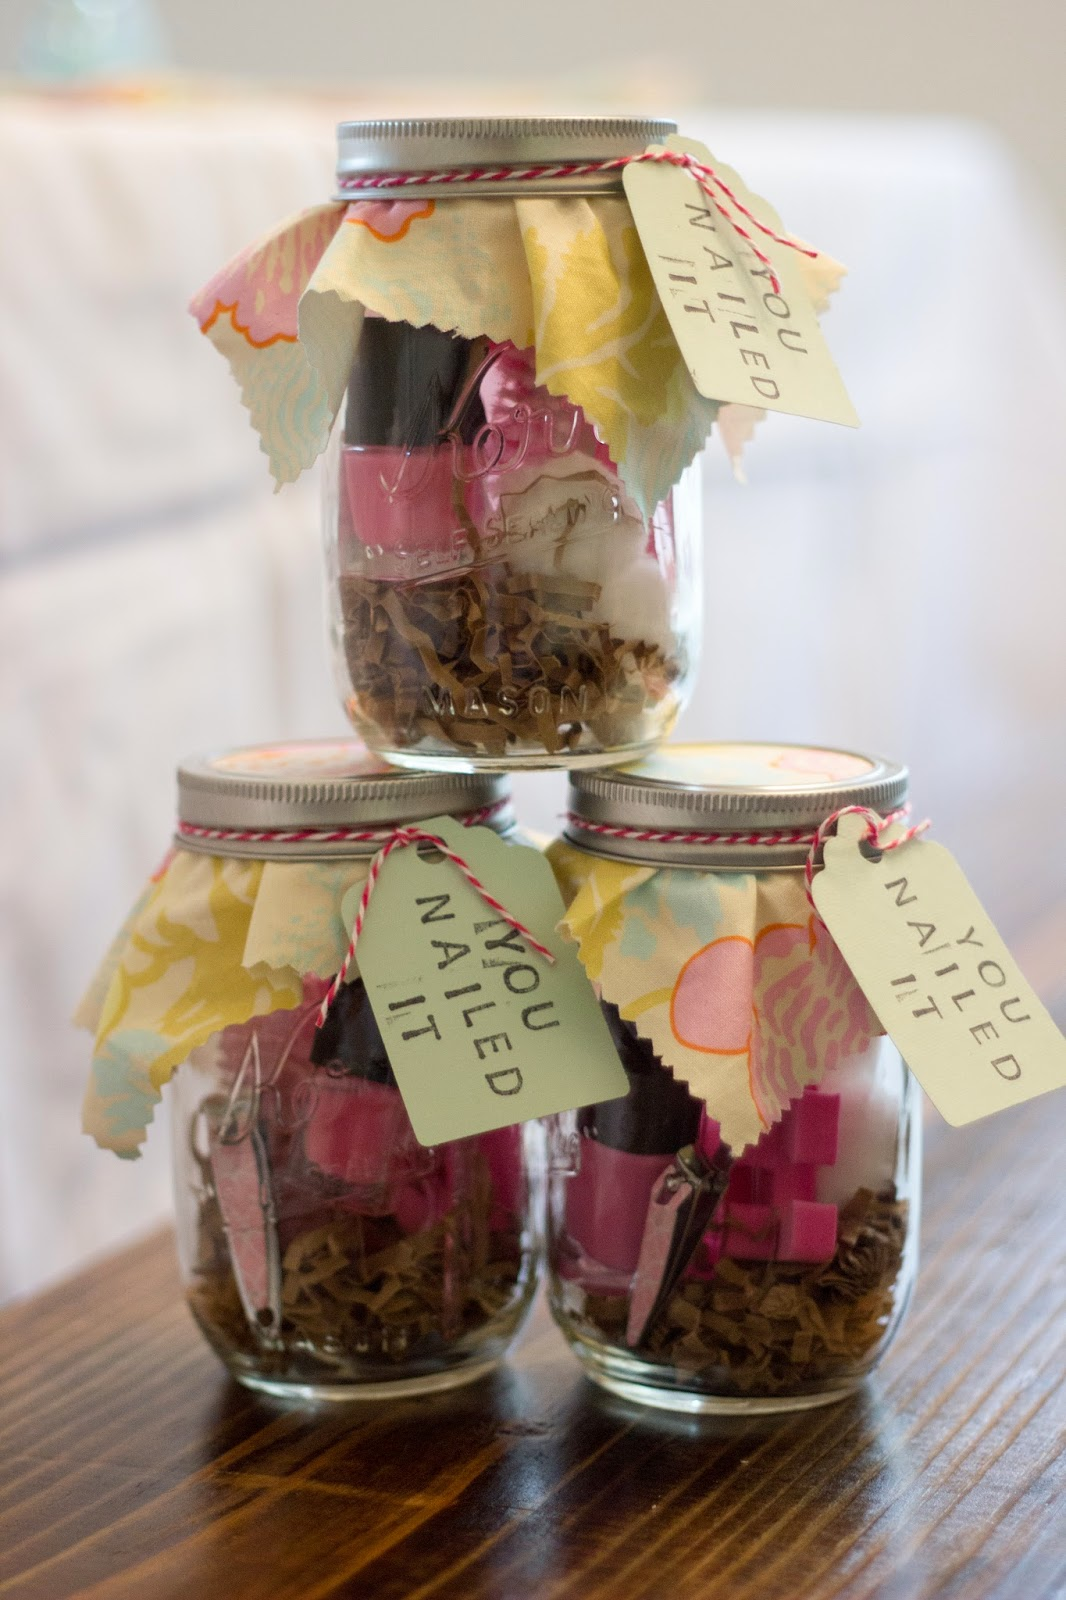 Image Of Baby Shower Prize Manicure Sets In Mason Jars